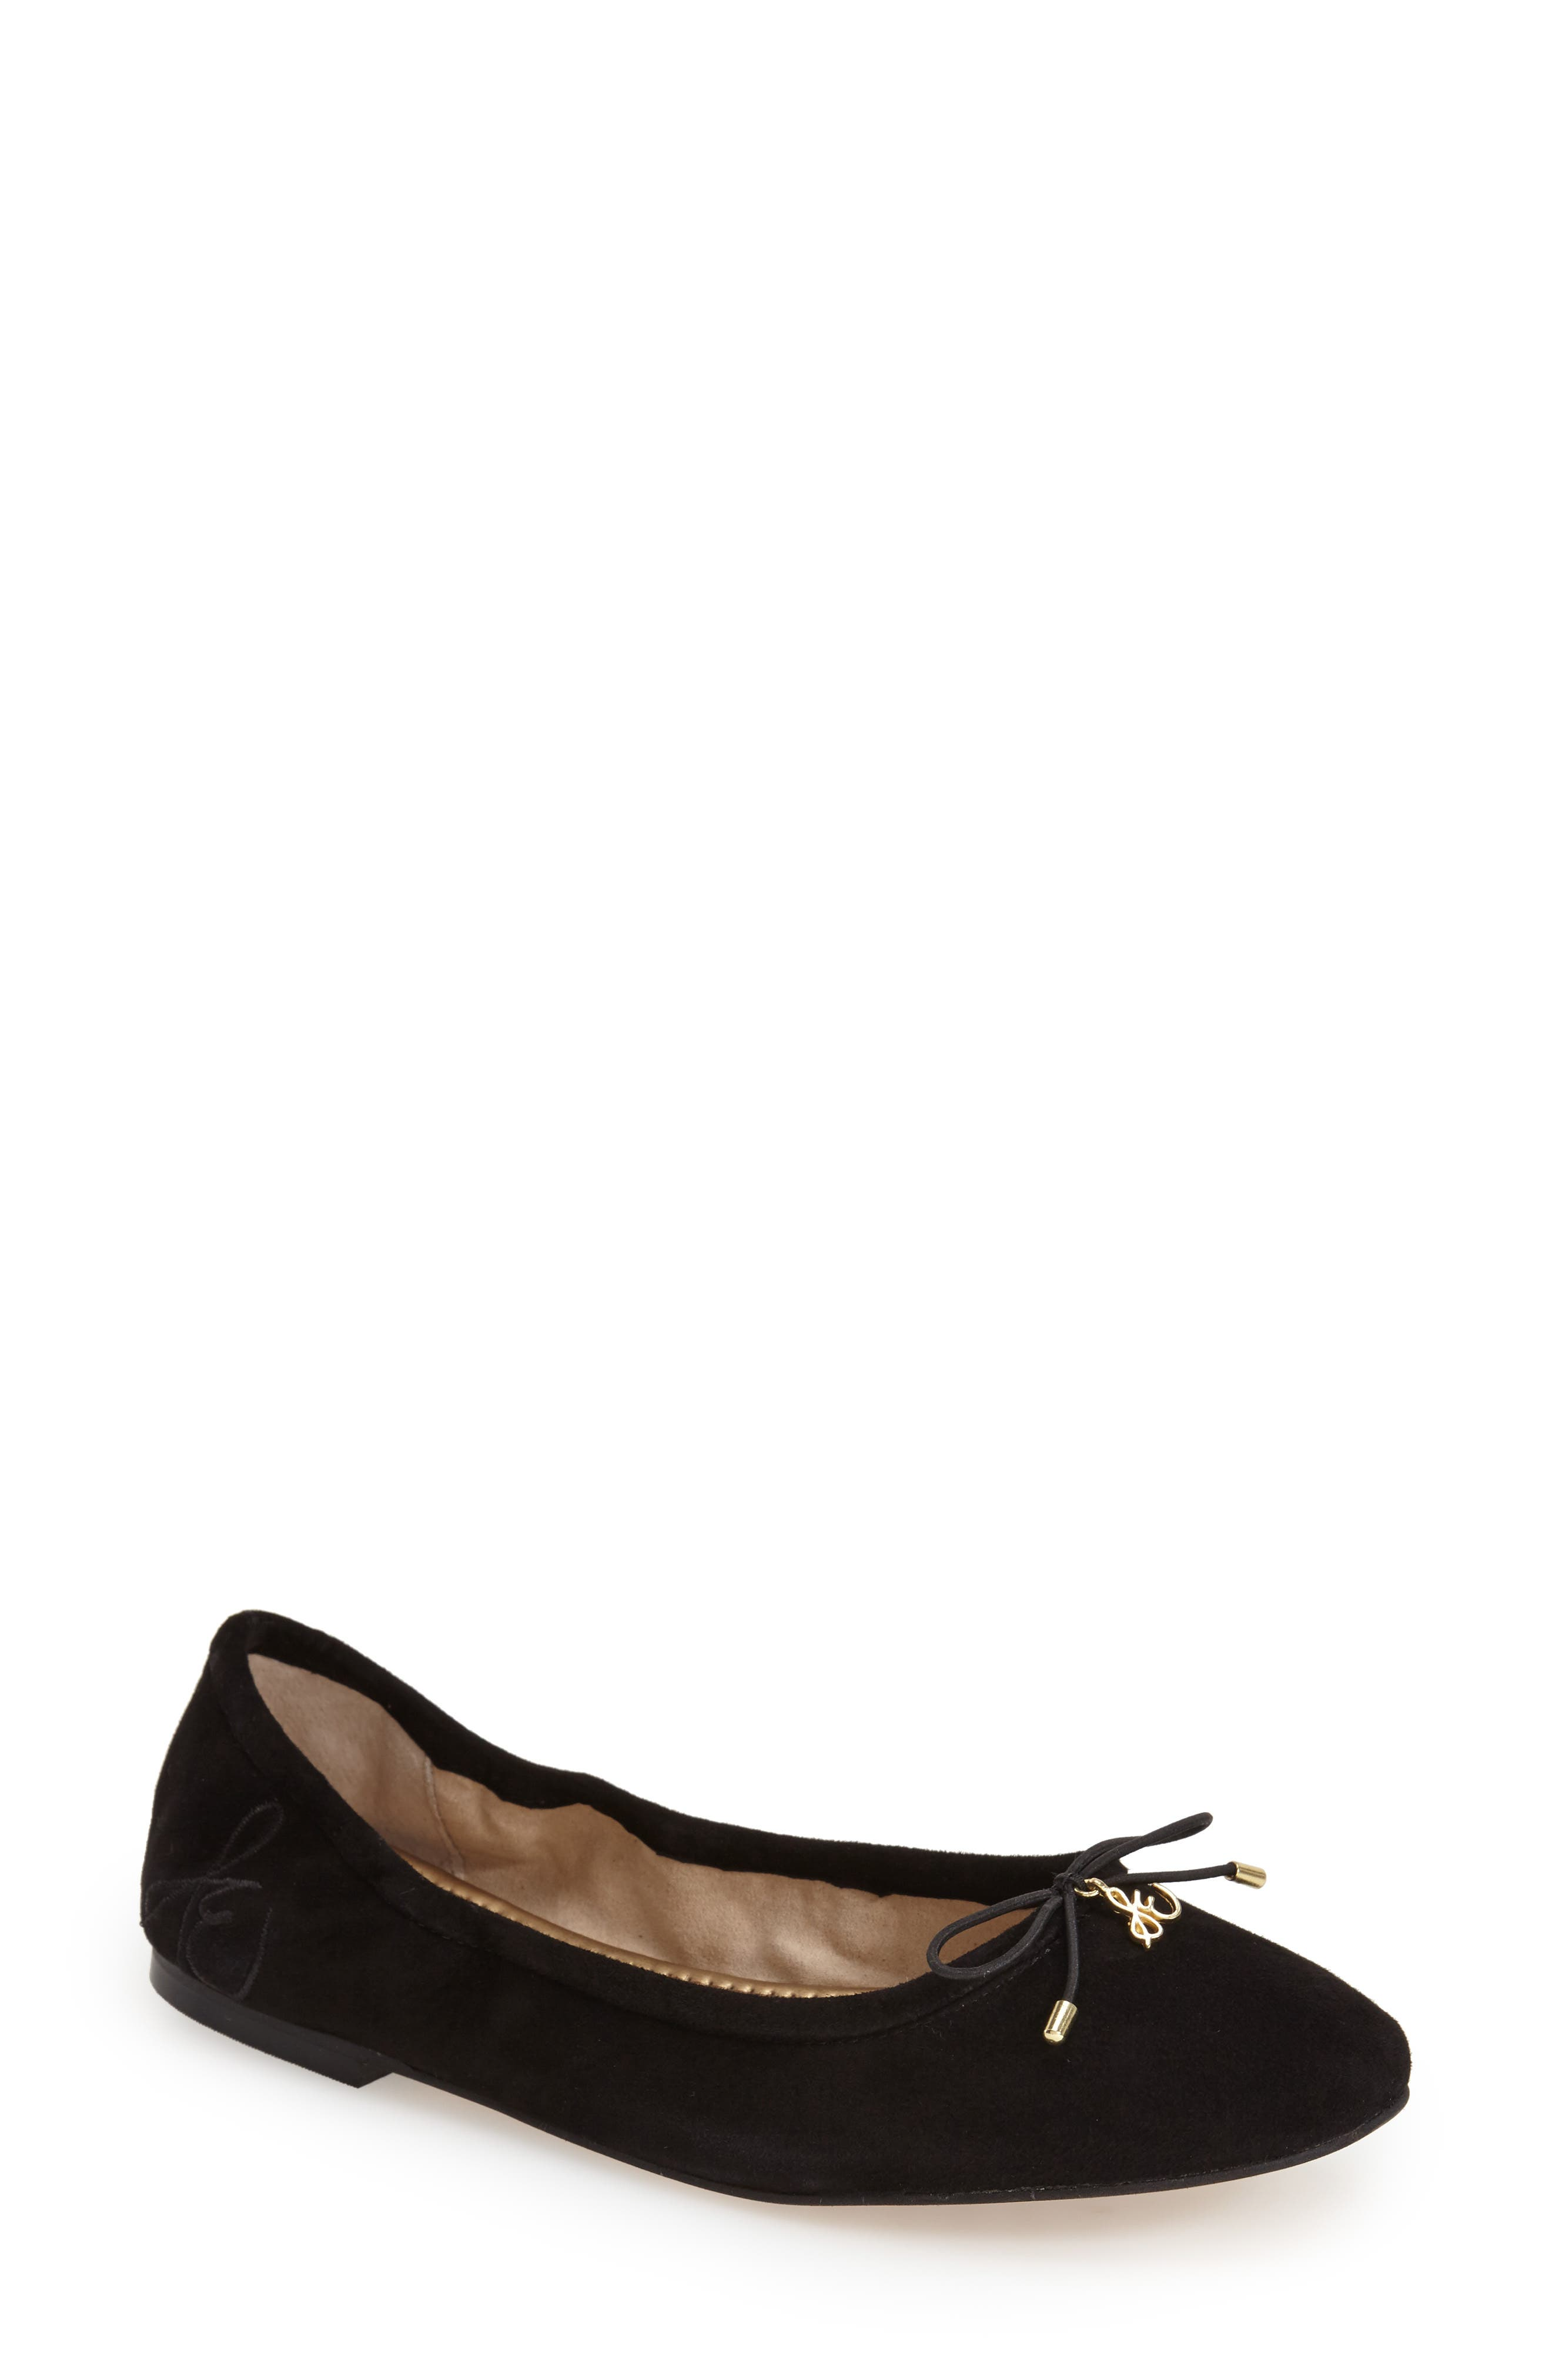 Felicia Flat,                         Main,                         color, BLACK SUEDE